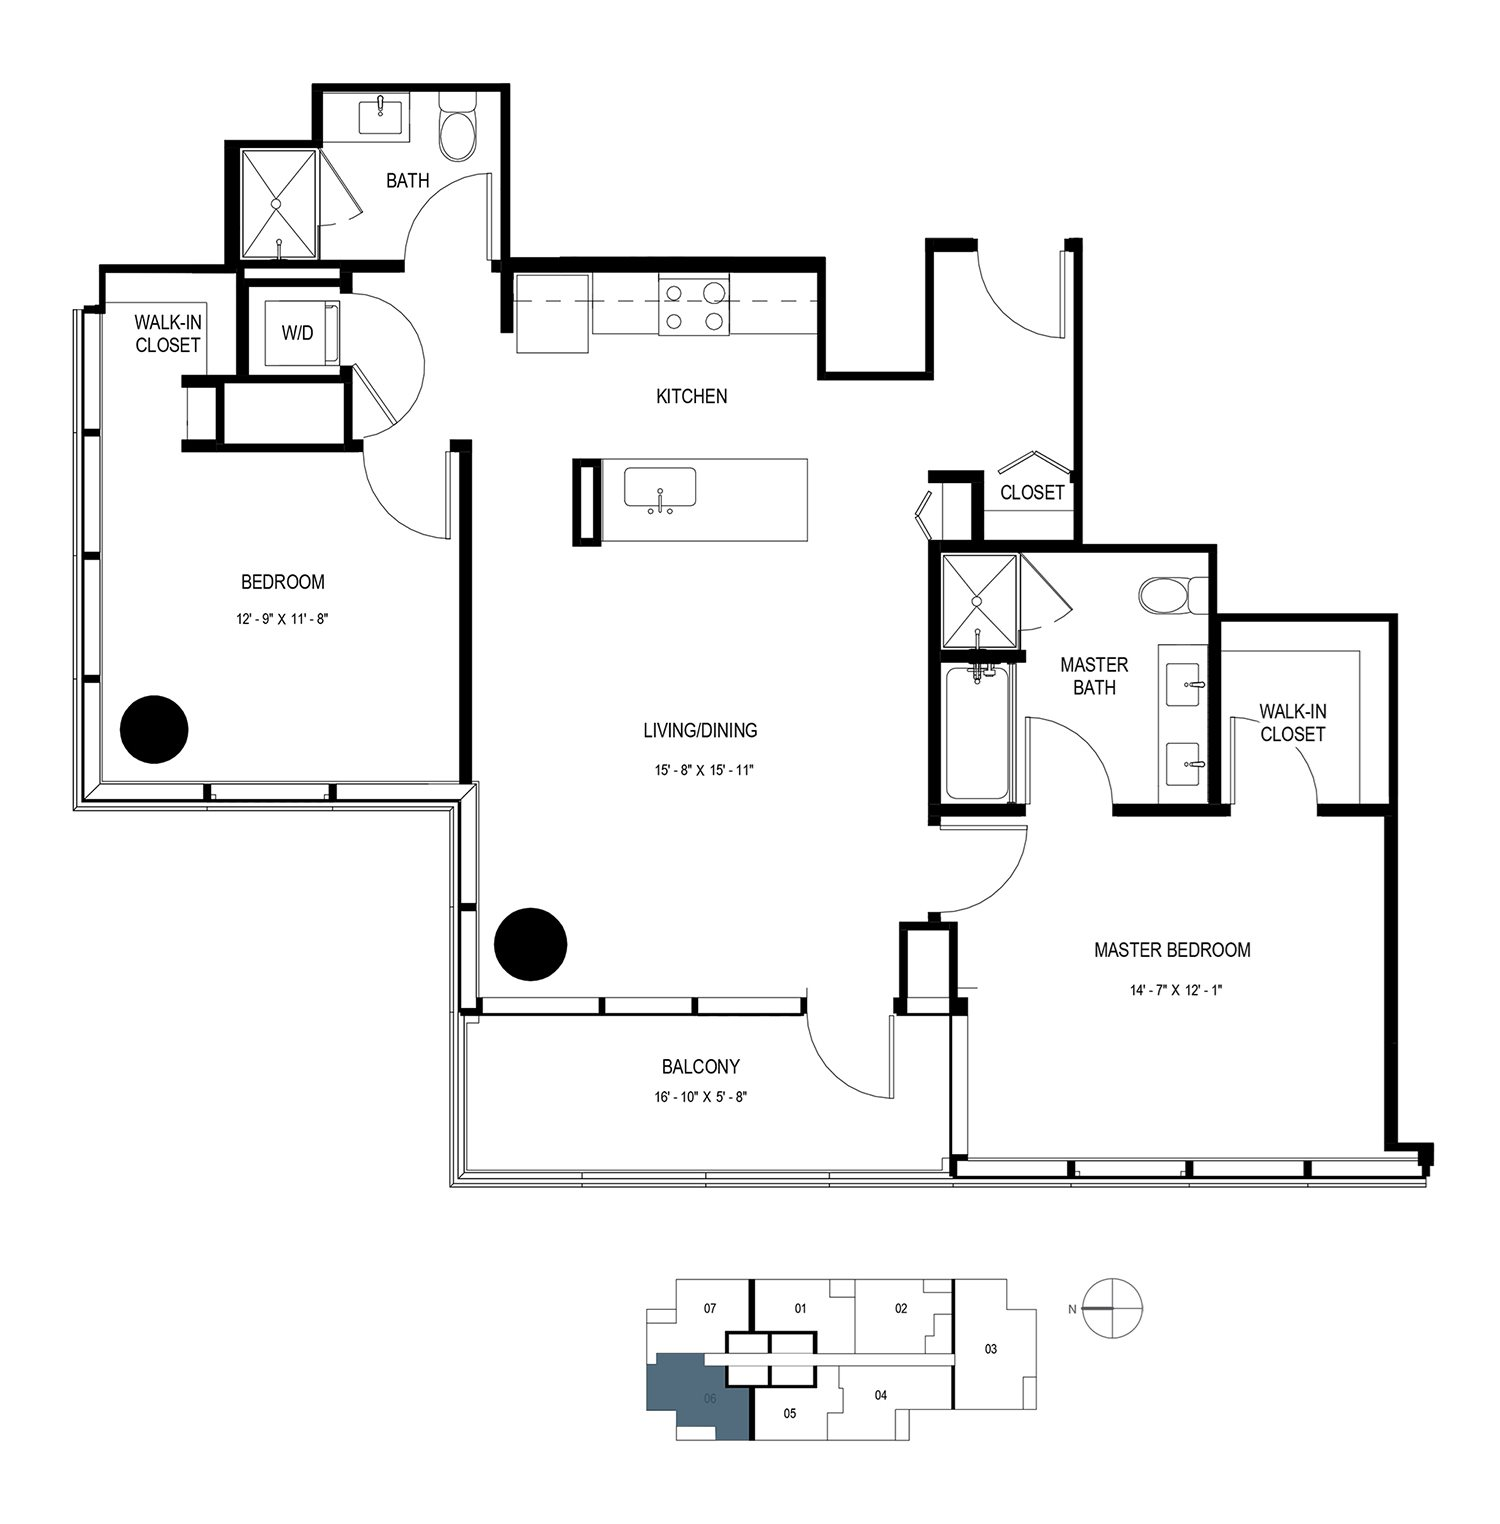 Two Bedroom Penthouse (1168 sf) Floor Plan 19